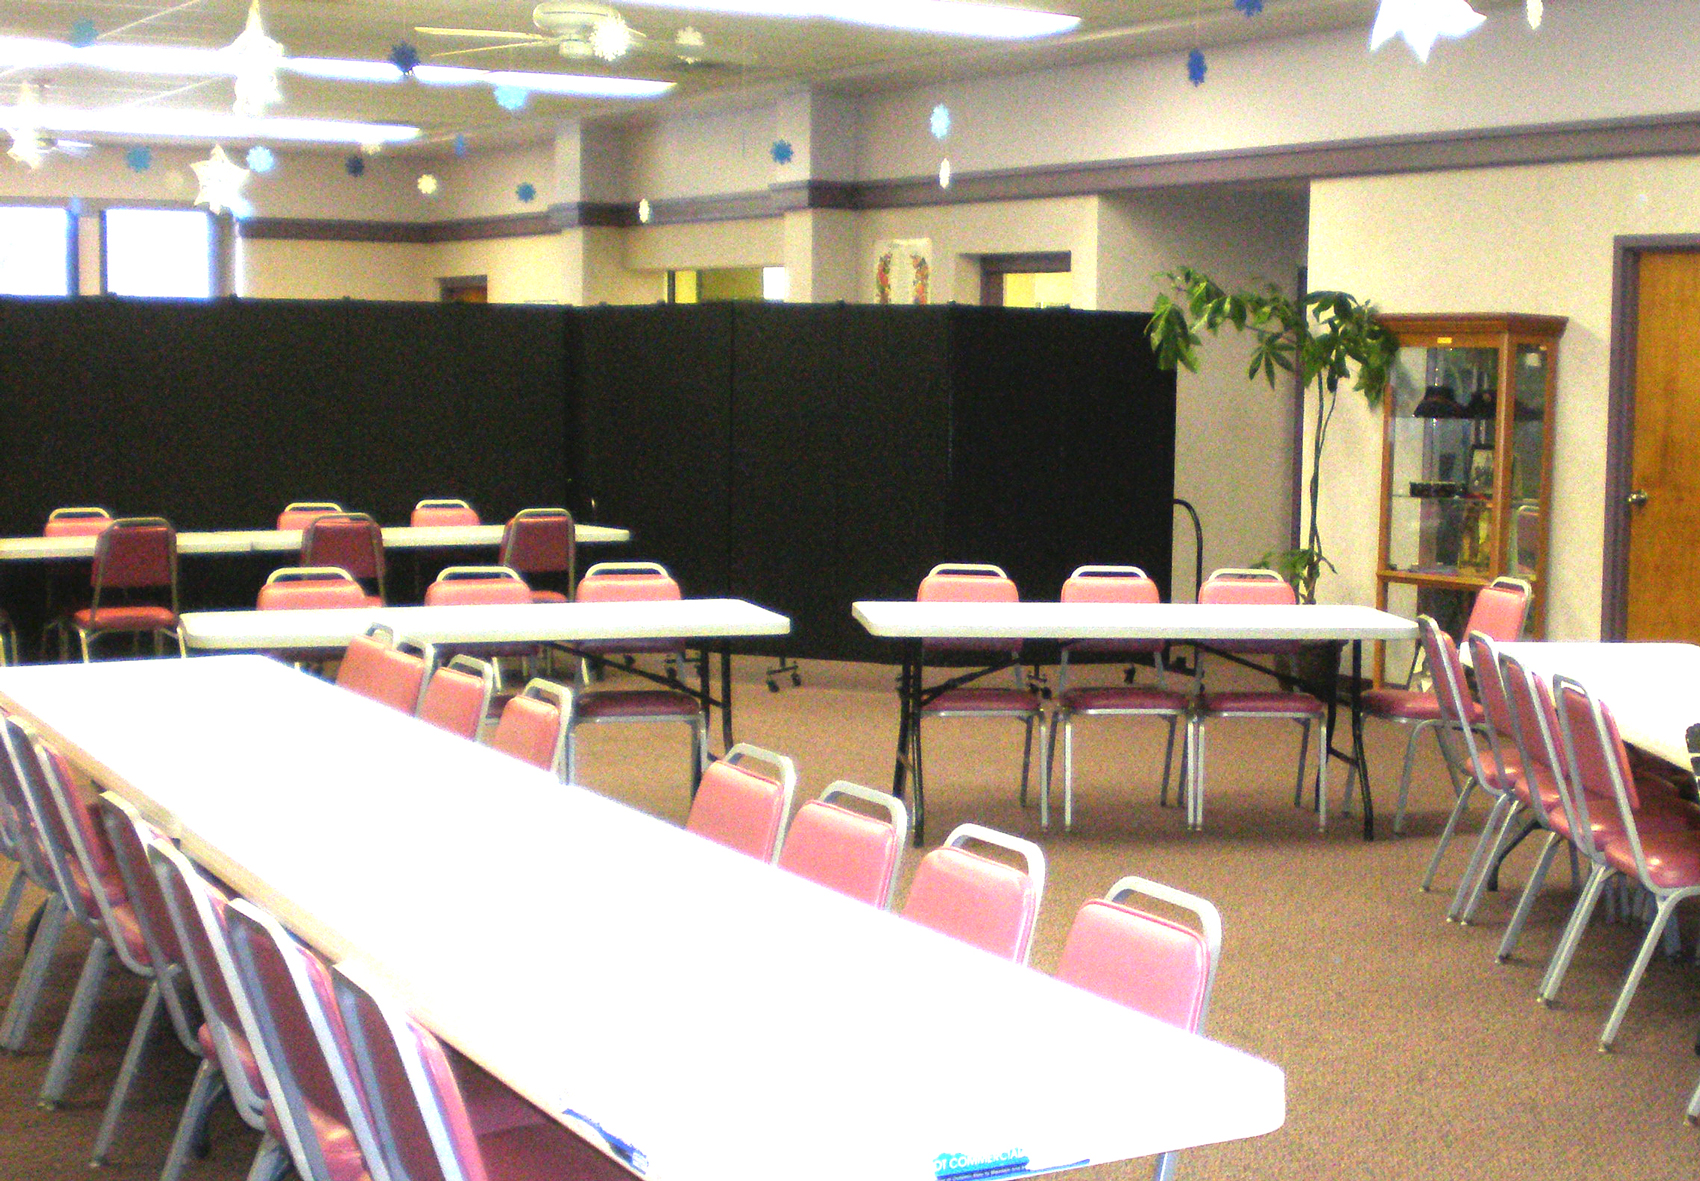 Salvation Army Meeting Room divided by Portable Room Divider